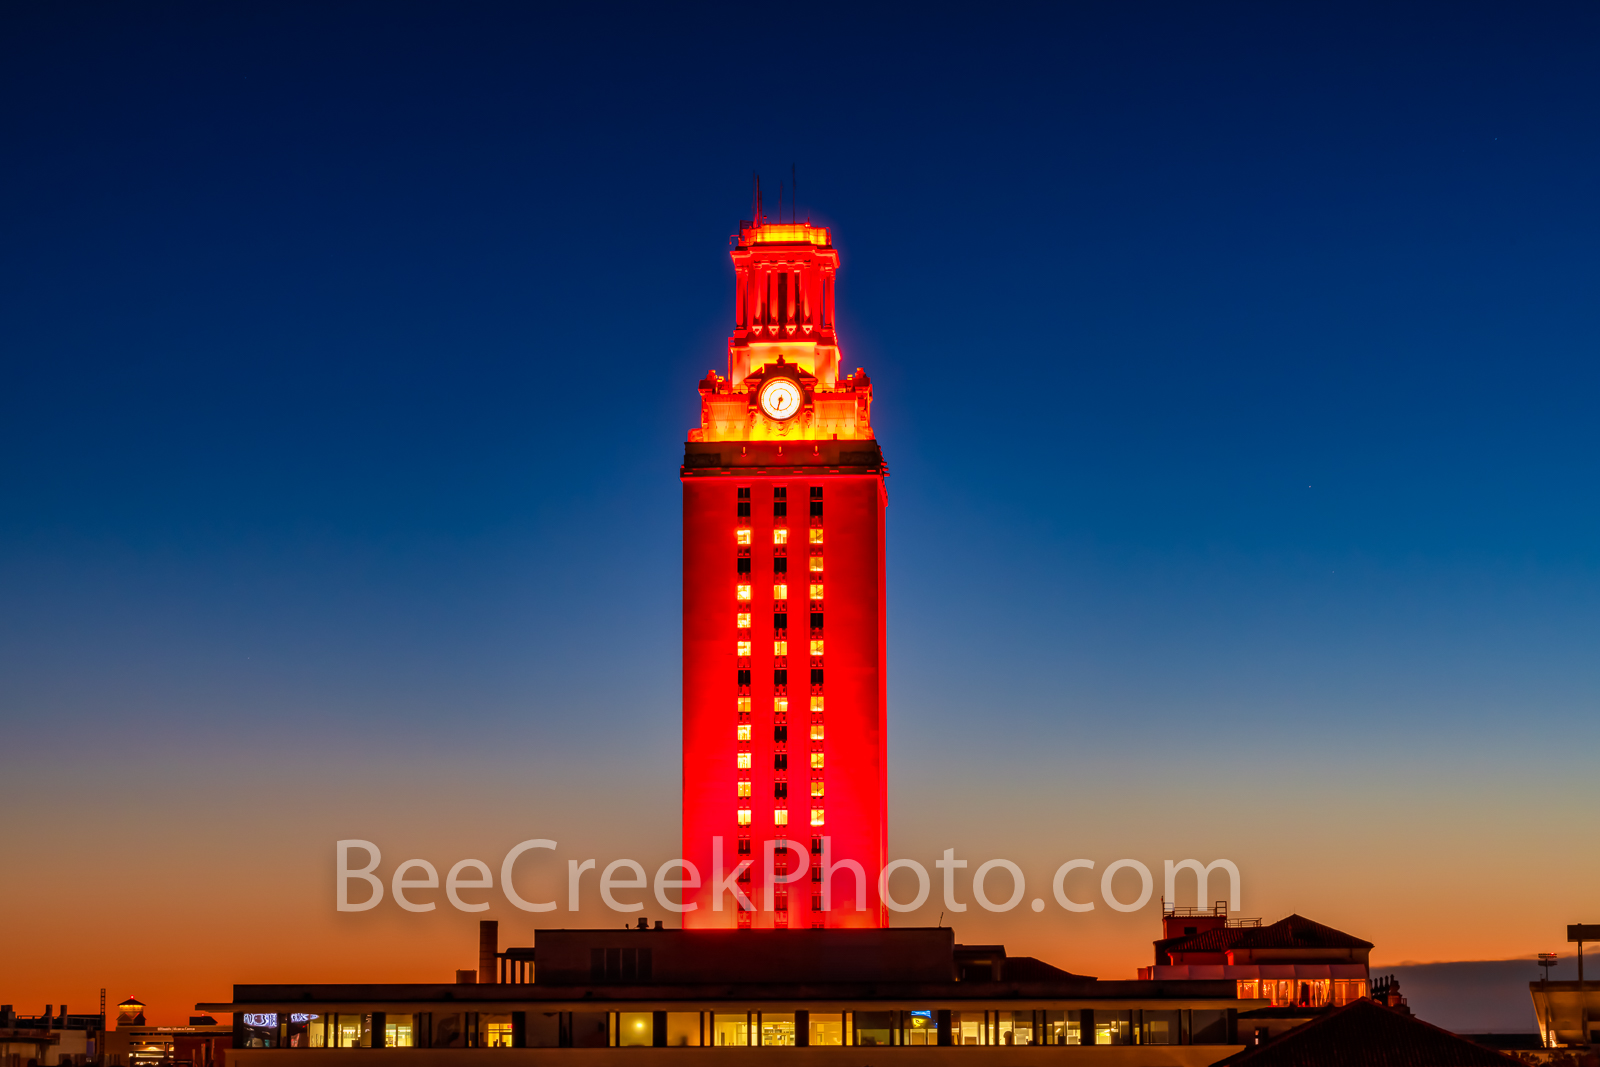 ut tower, texas, austin, austin texas, downtown austin, university of texas, ut austin, student union, college, sports, austin ut, ut, texas ut, research, students, texas university, landmark,